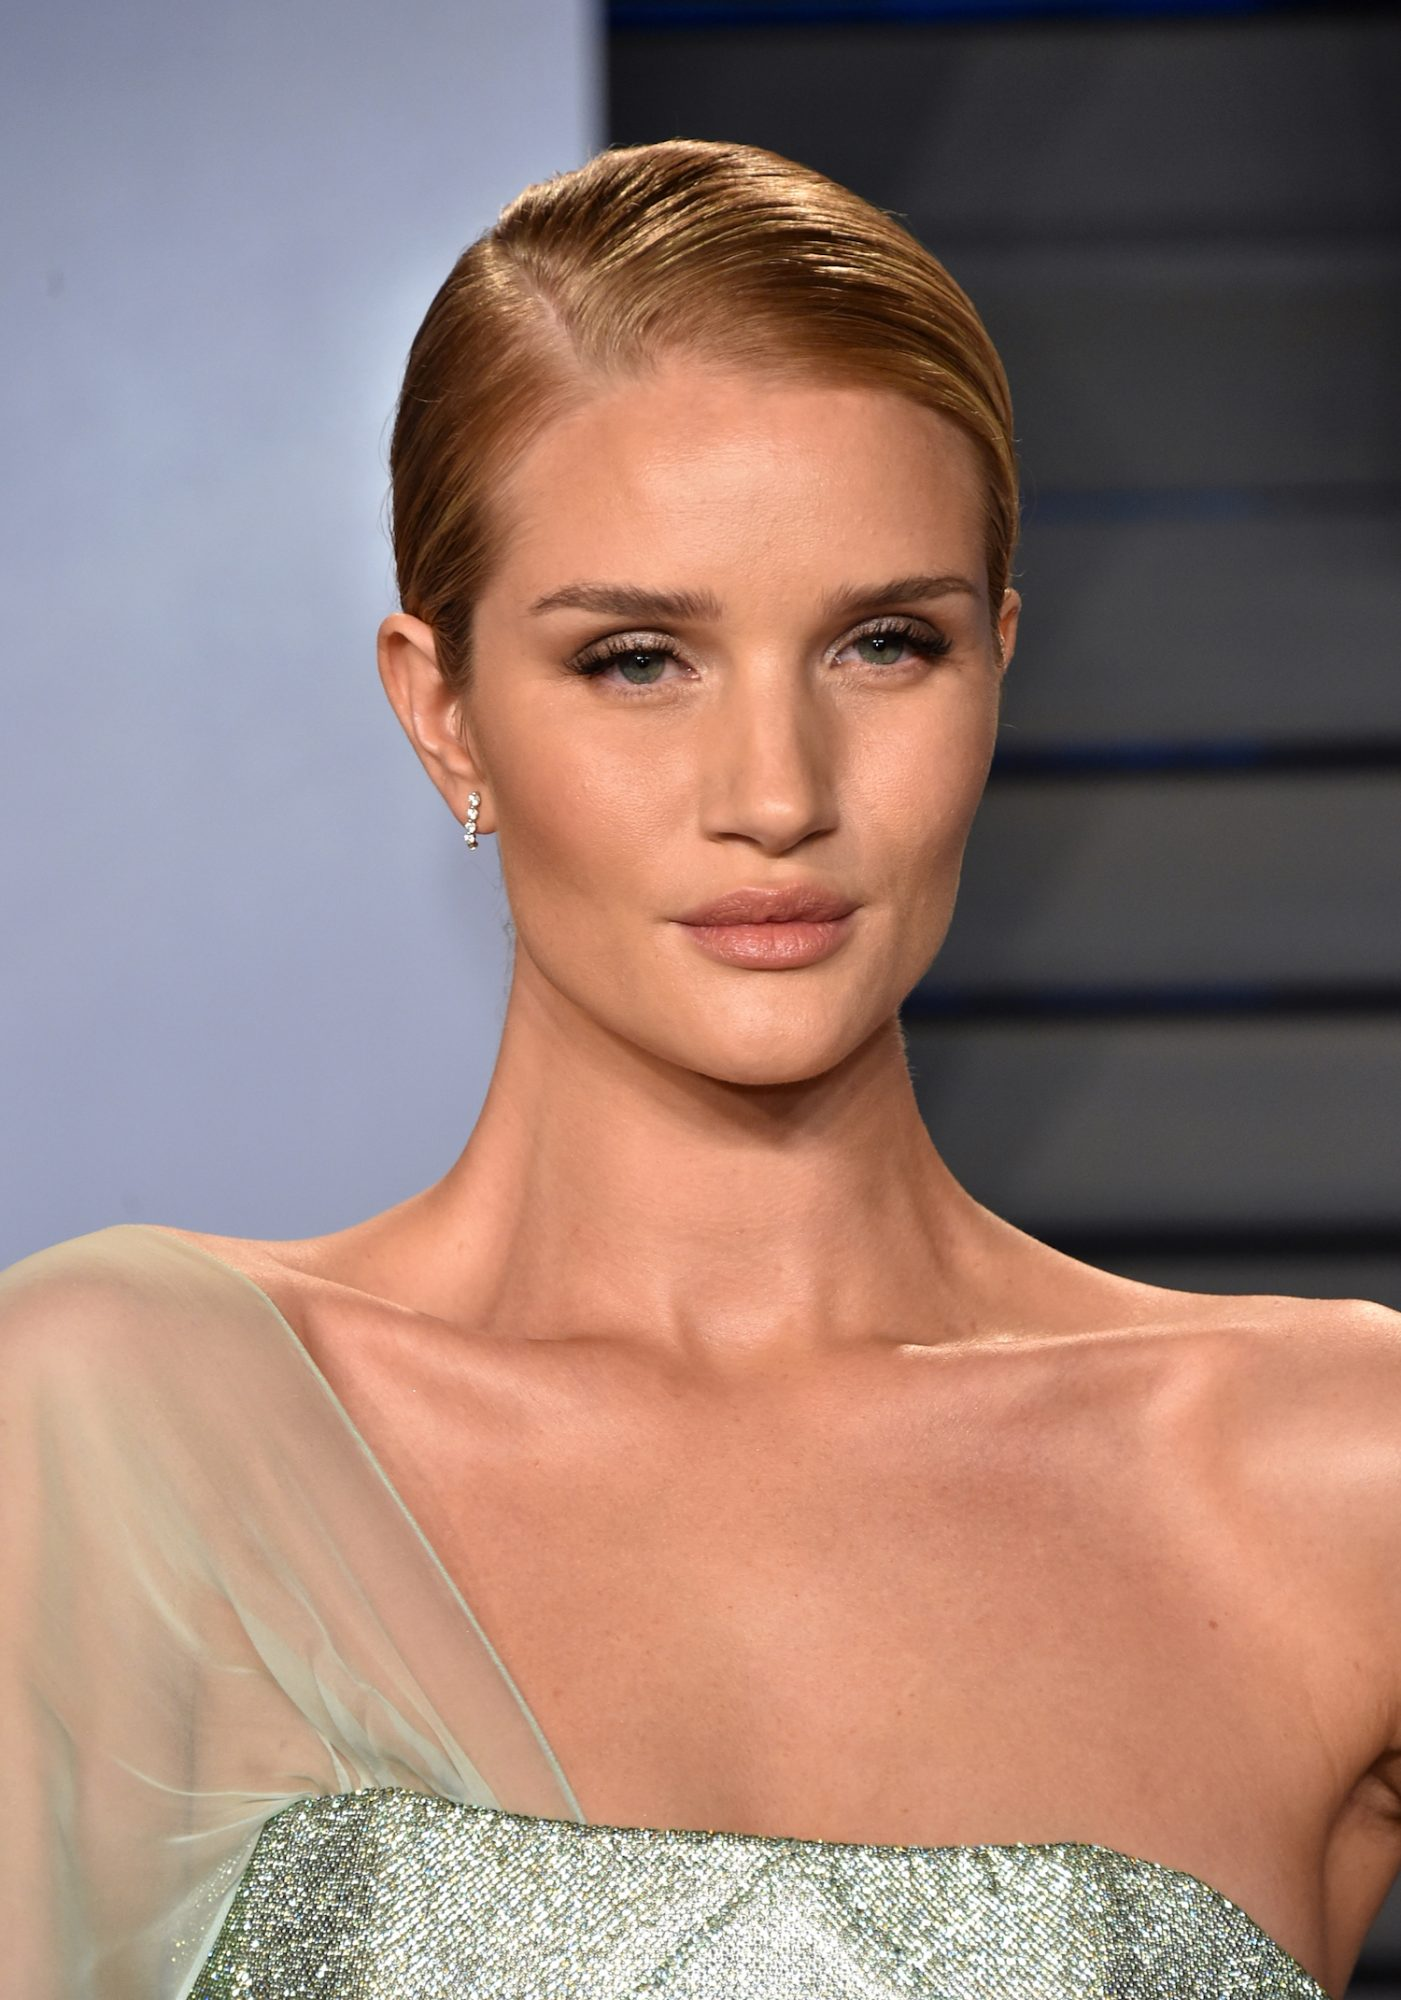 Rosie Huntington-Whiteley Uses This Acne Spot Treatment